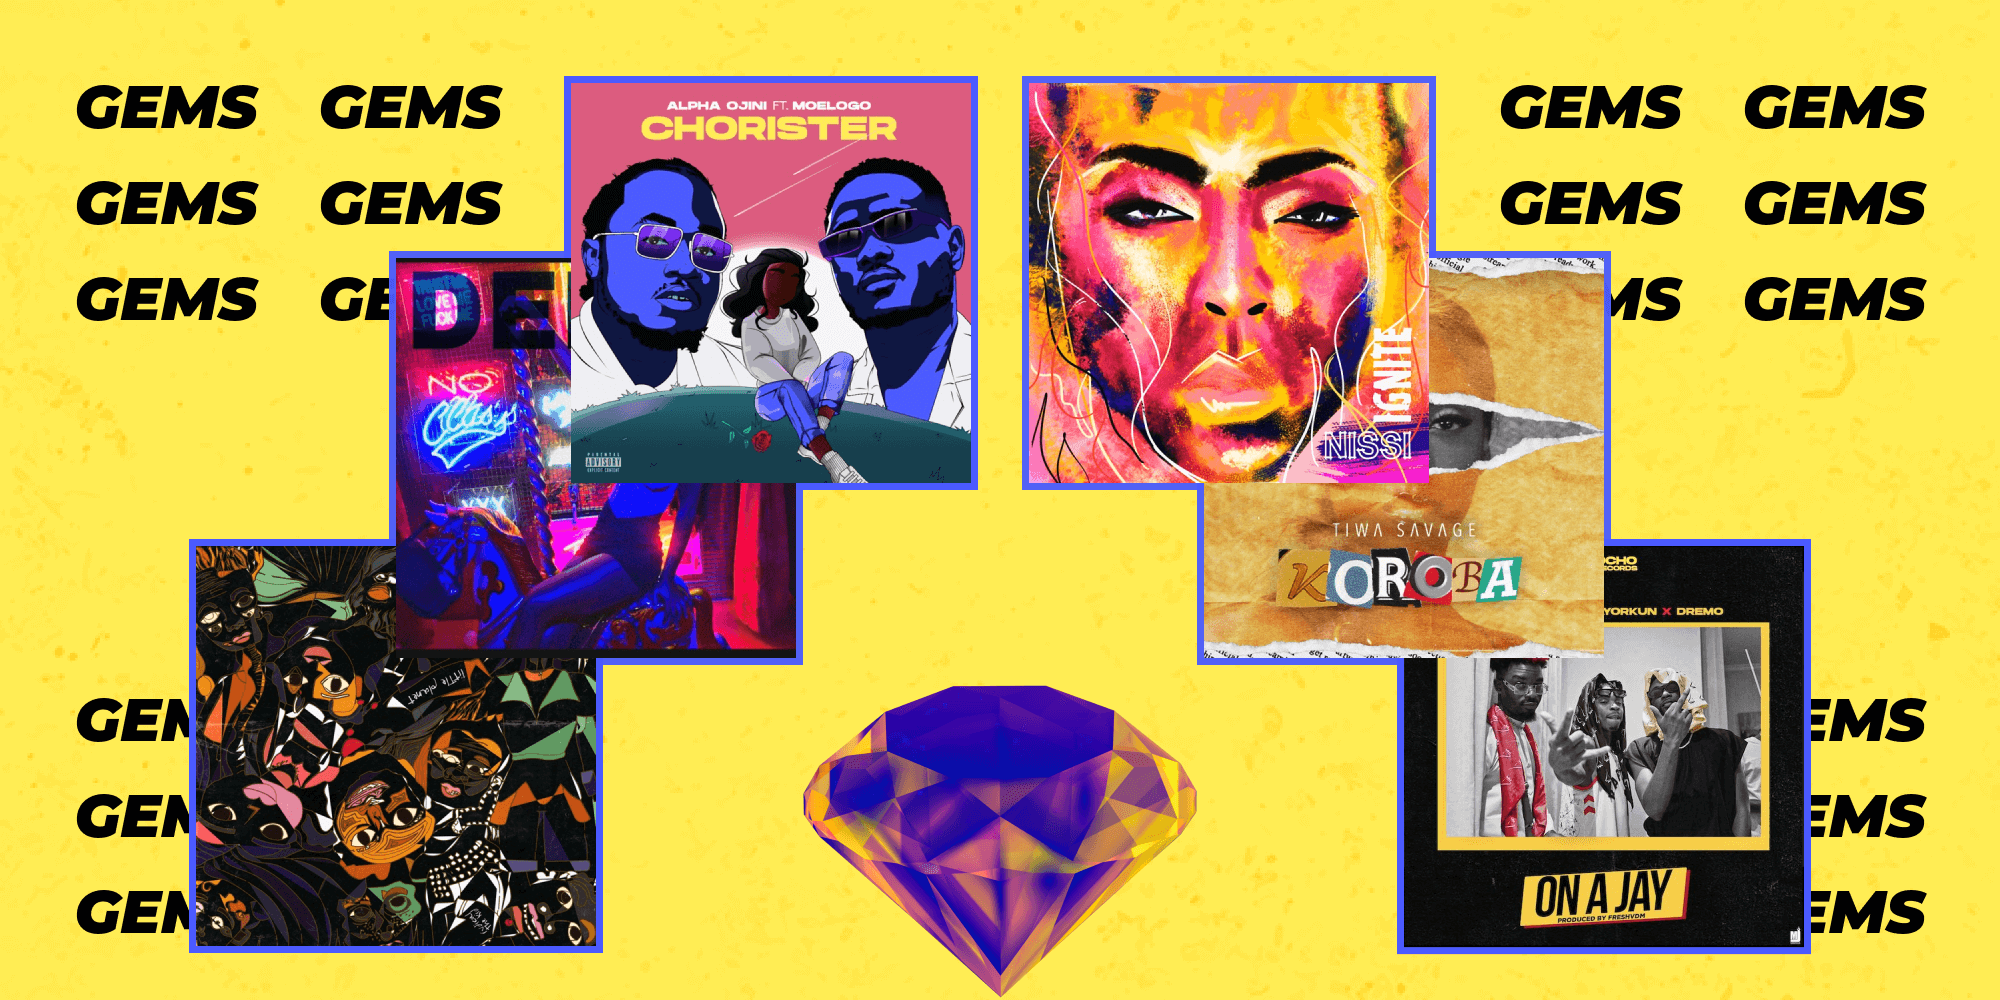 GEMS: A list of the best songs this week